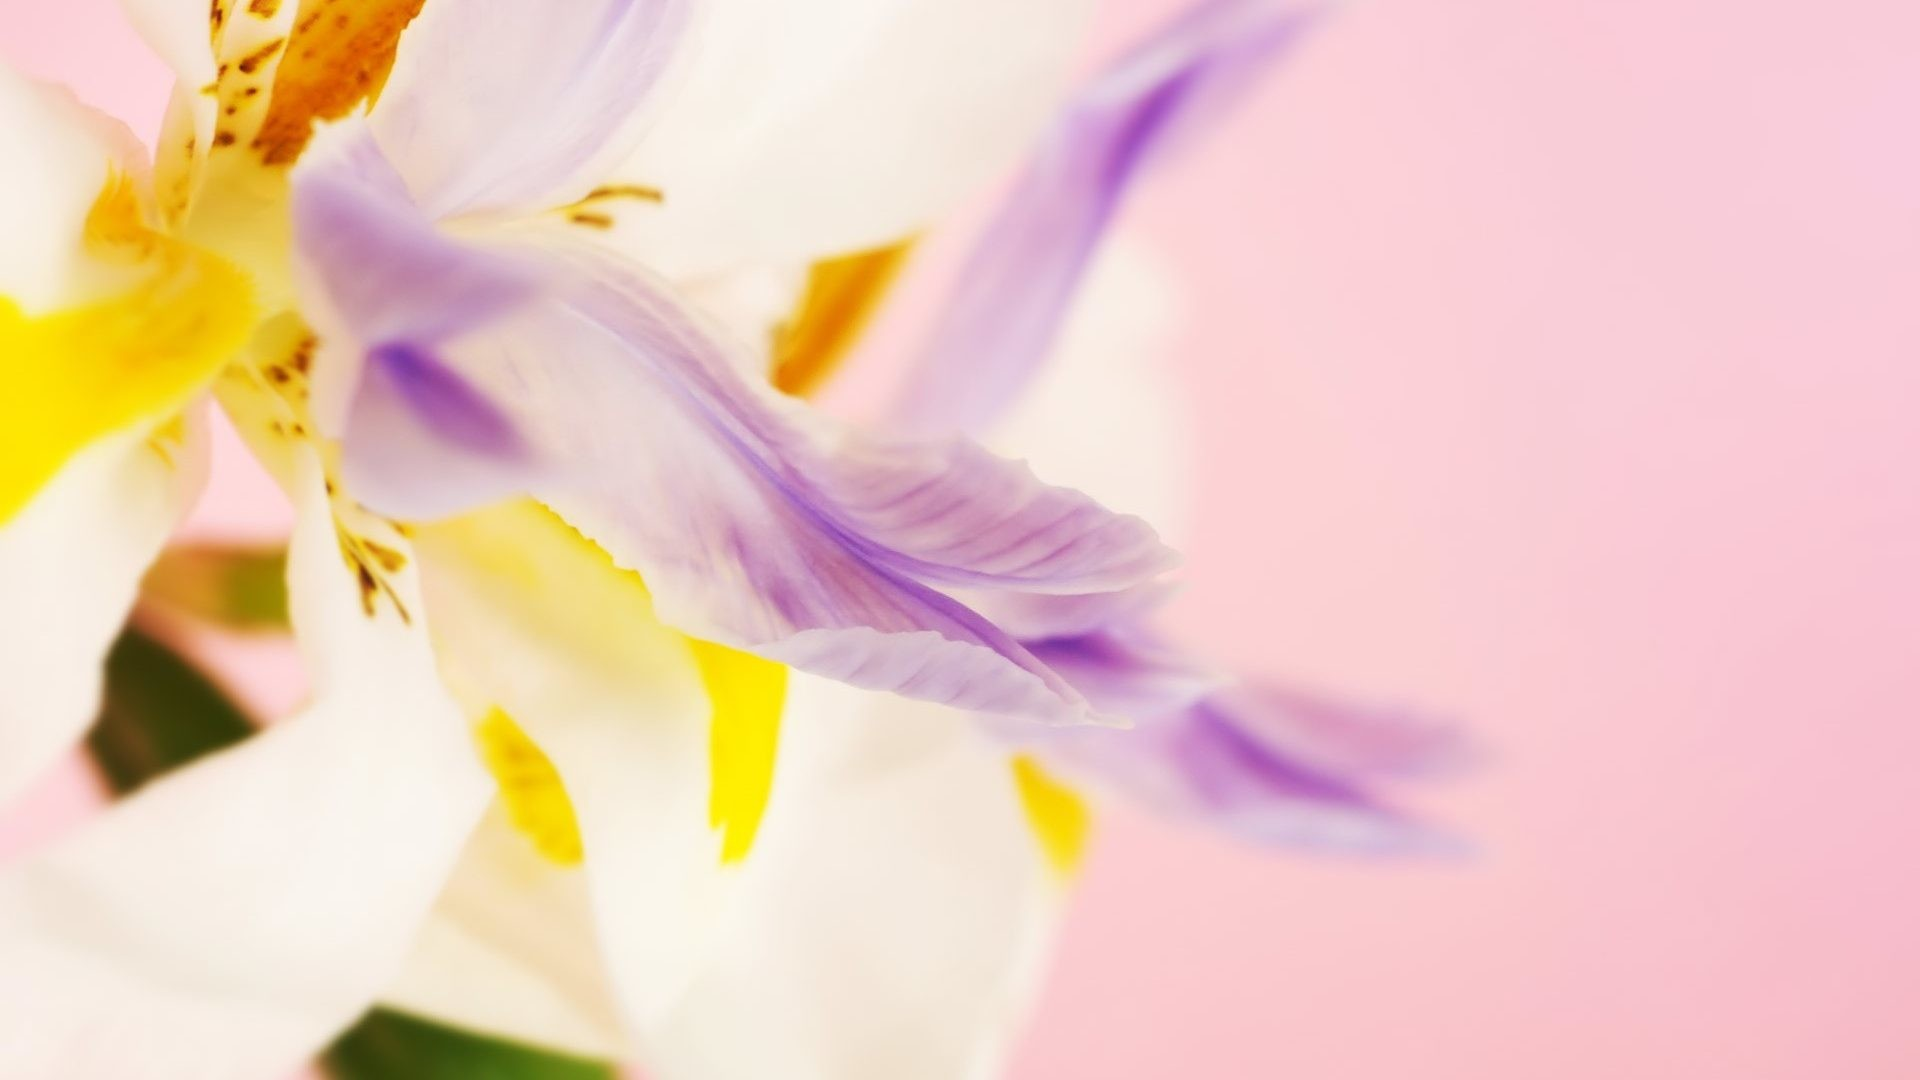 Pastel Tag – Colors Soft Yellow Pink Pastels Petals Pastel Purple White  Flower Wallpaper Ipad for